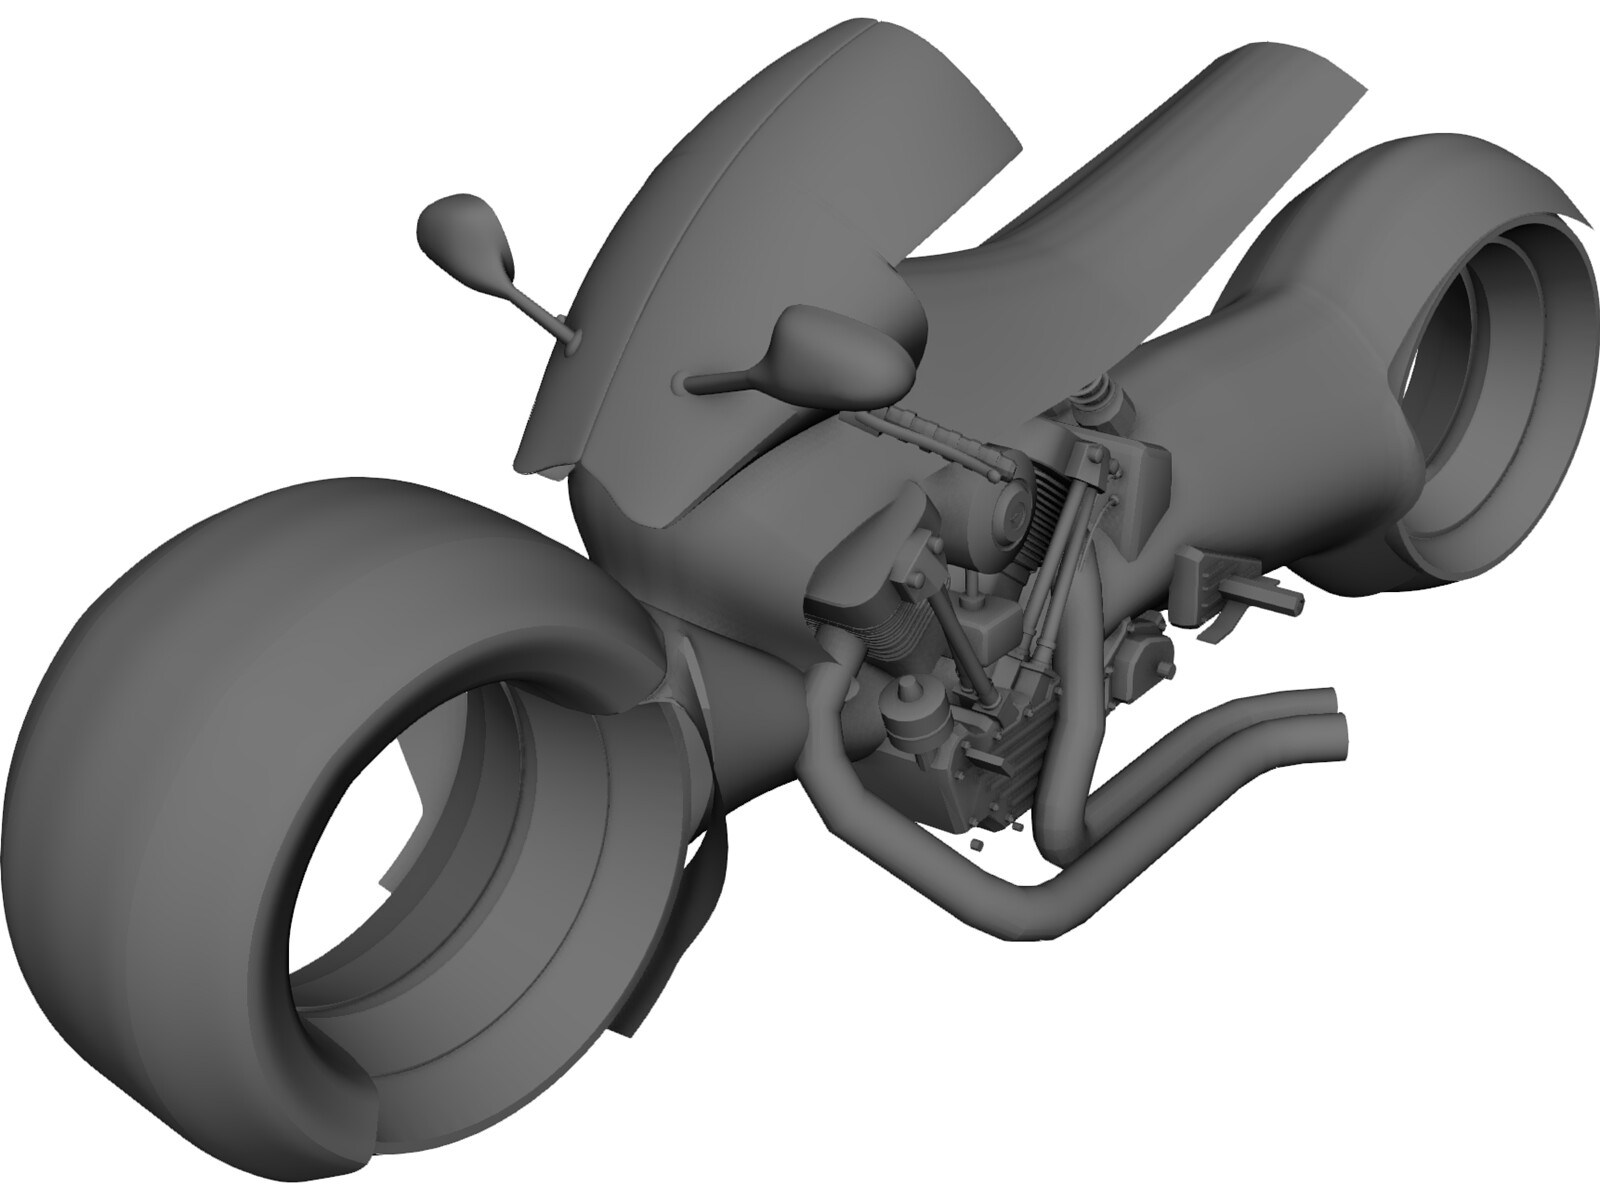 Connecting Rod Bike Concept 3D Model